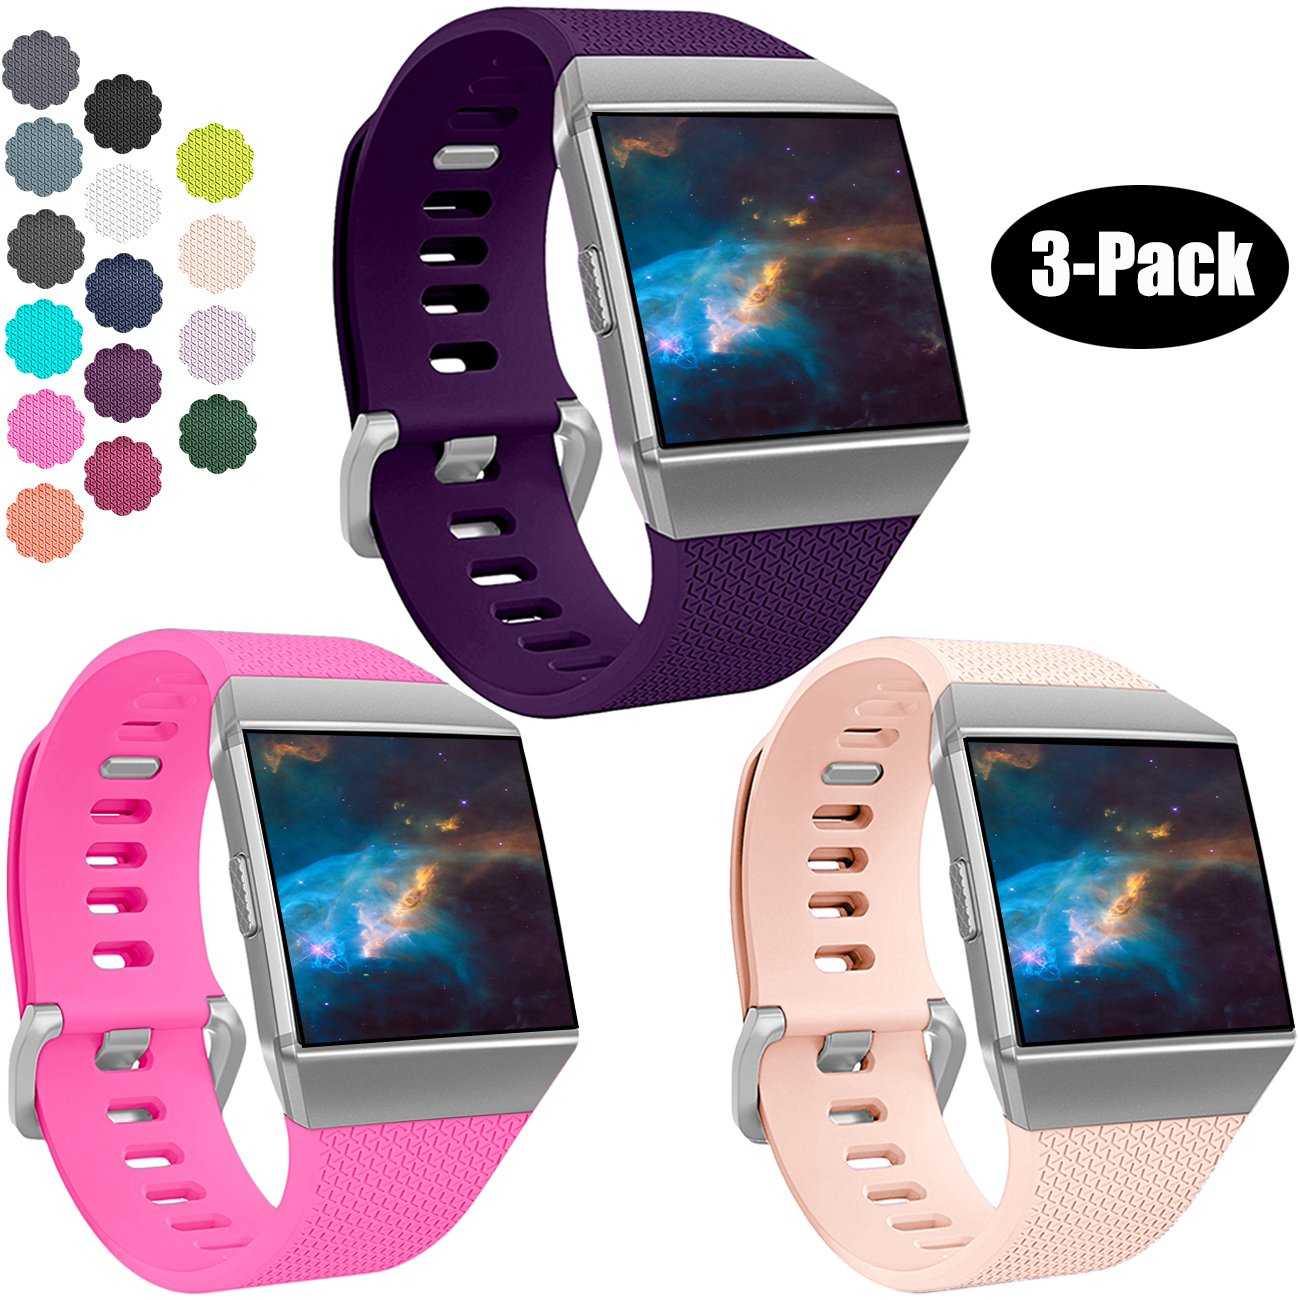 Wepro Fitbit Charge 2バンド、交換用for Fitbit Charge HR、バックル、15色、S、L 2 Small|02-Plum/Rose Pink/Blush Pink 02-Plum/Rose Pink/Blush Pink Small B078X7SH1S